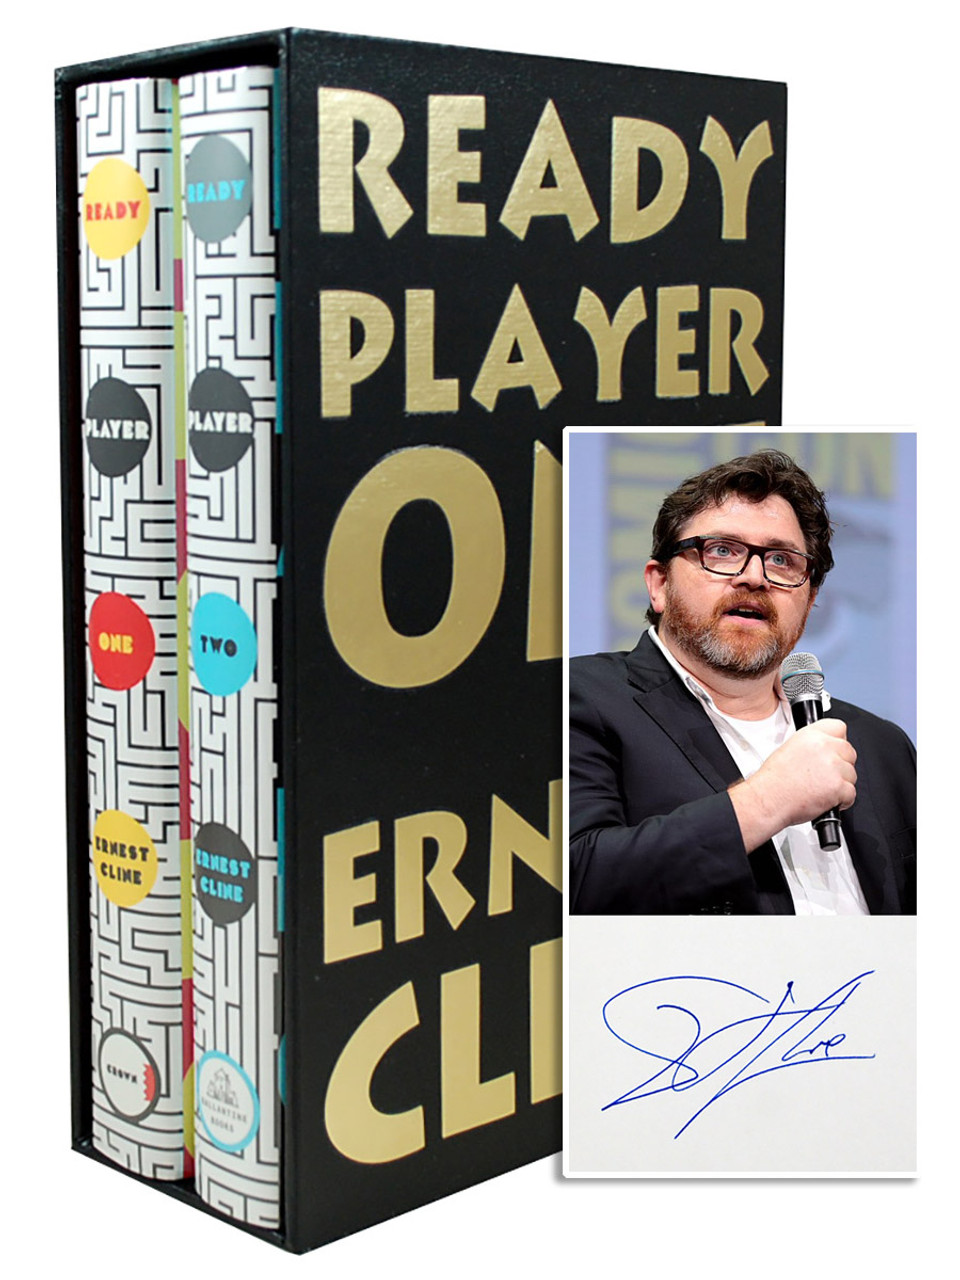 """Ernest Cline """"Ready Player One"""" + """"Ready Player Two"""" Signed First Edition, First Printing, Slipcased 2-Vol. Box Set w/COA [Very Fine]"""